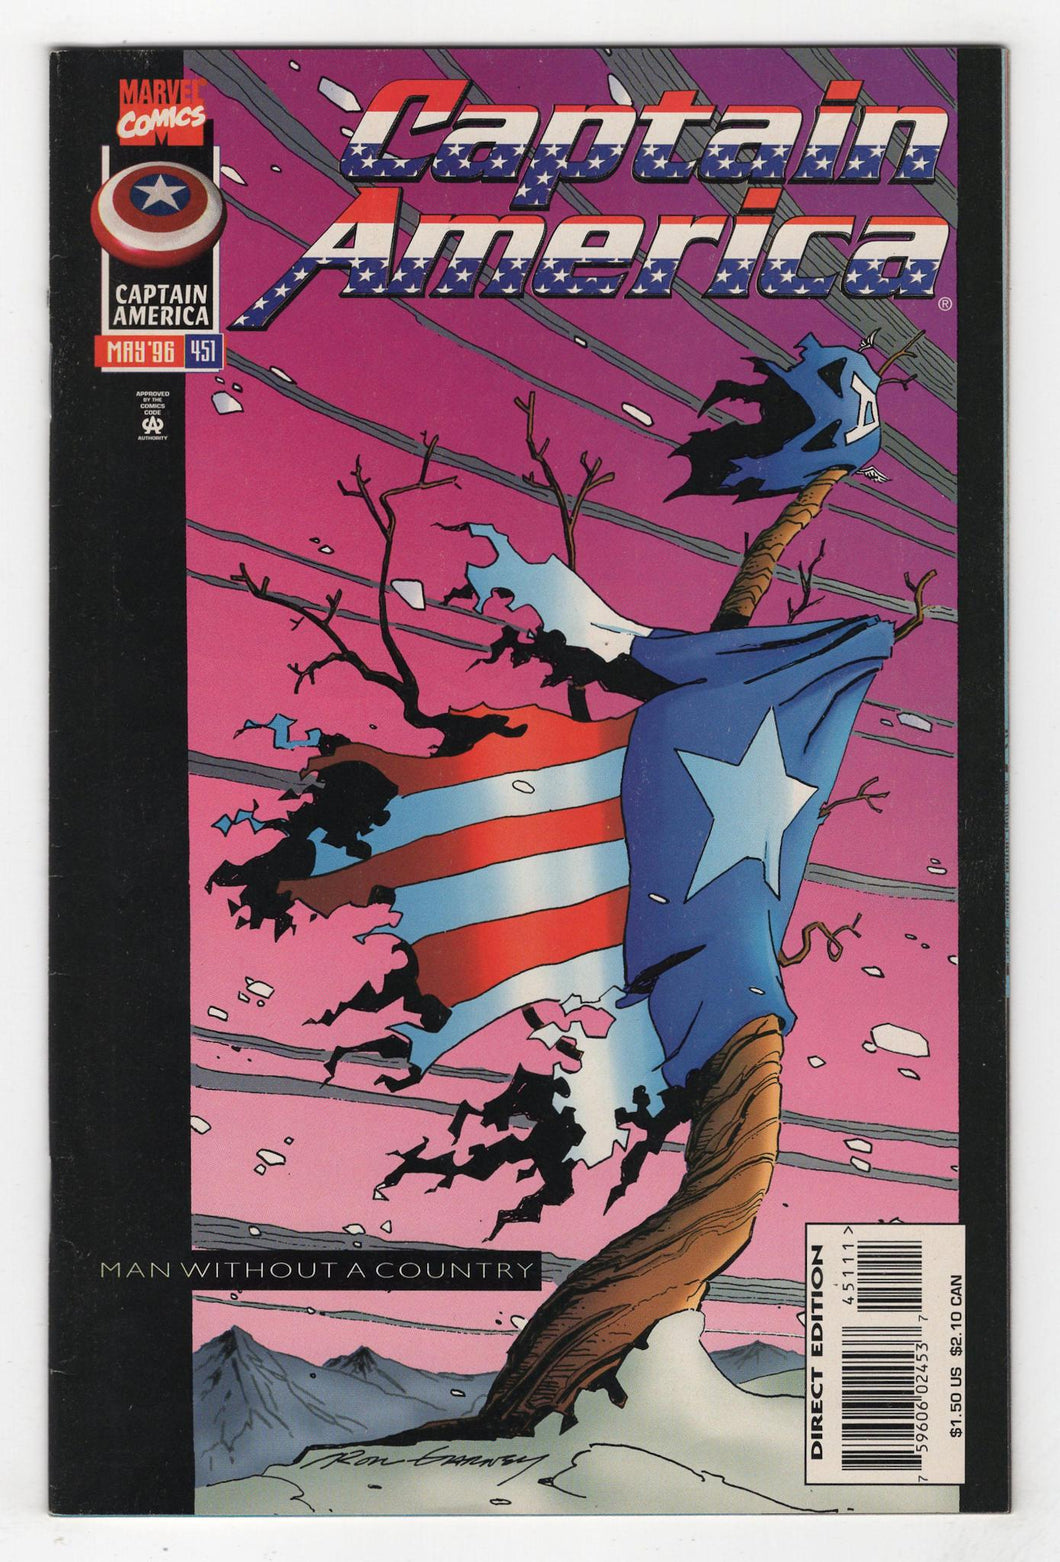 Captain America #451 Cover Front